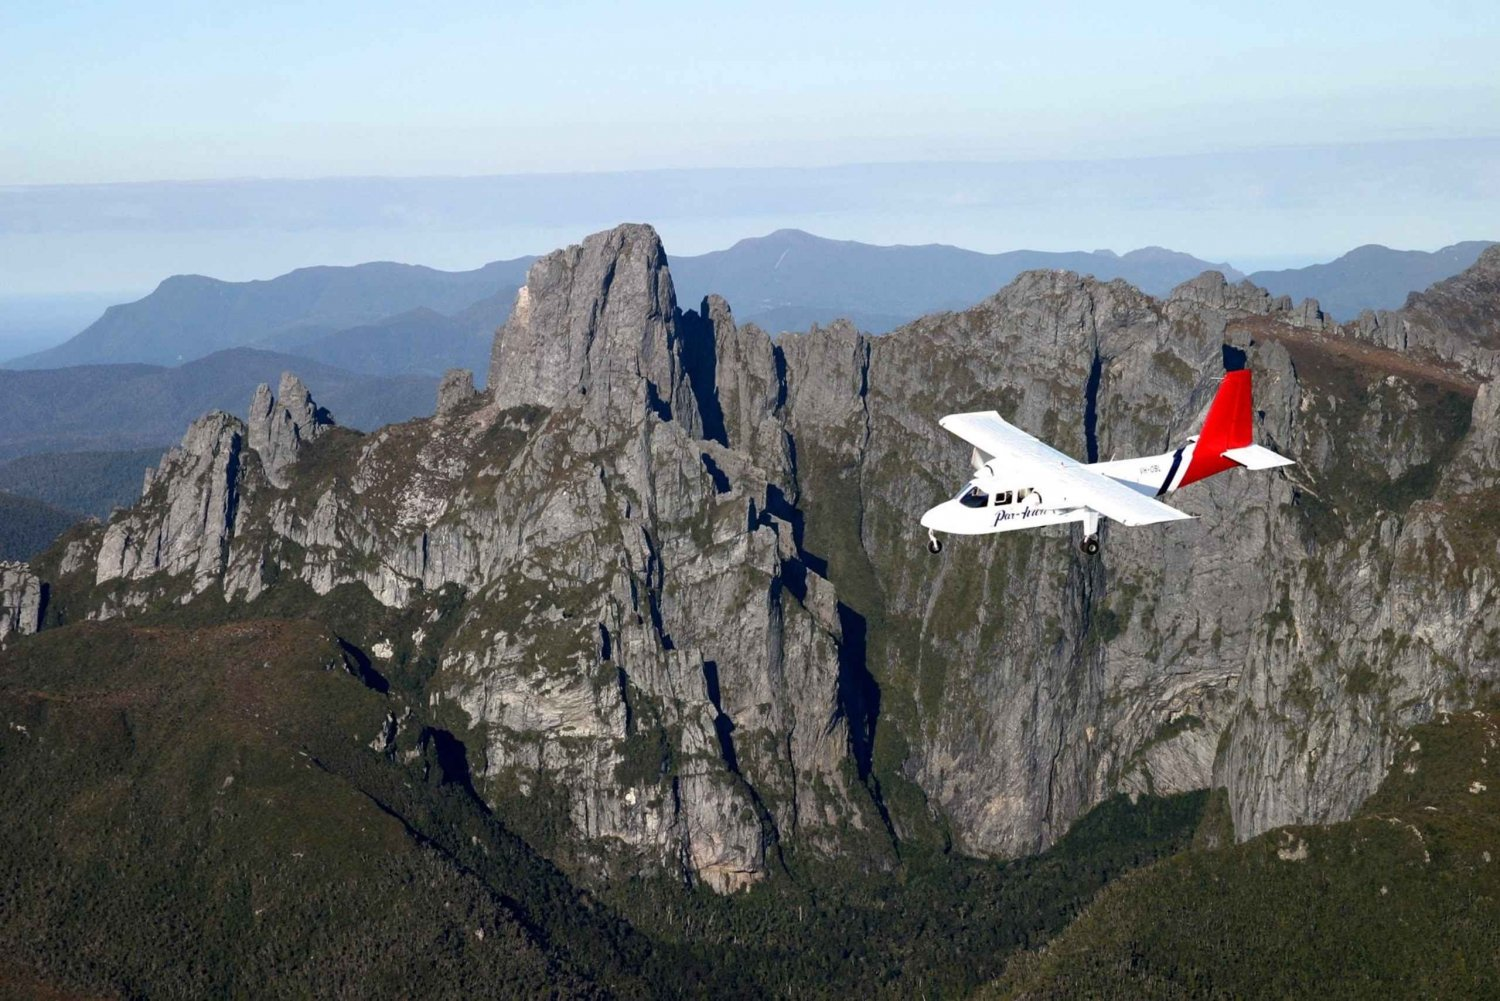 Hobart: Day Trip to National Park with Flights and Cruise